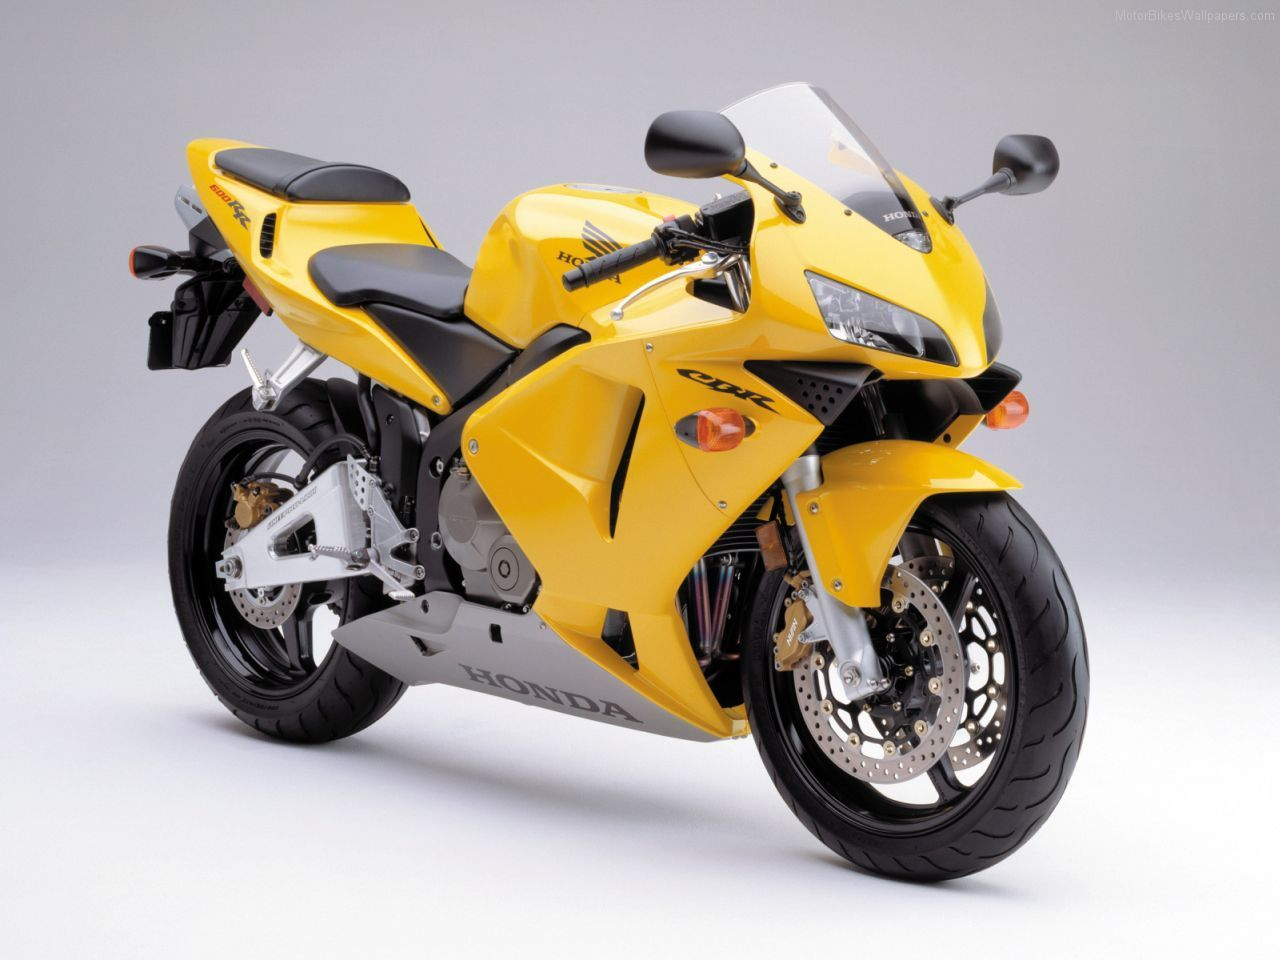 Honda Bike Wallpapers 2 Honda Cbr Honda Bikes